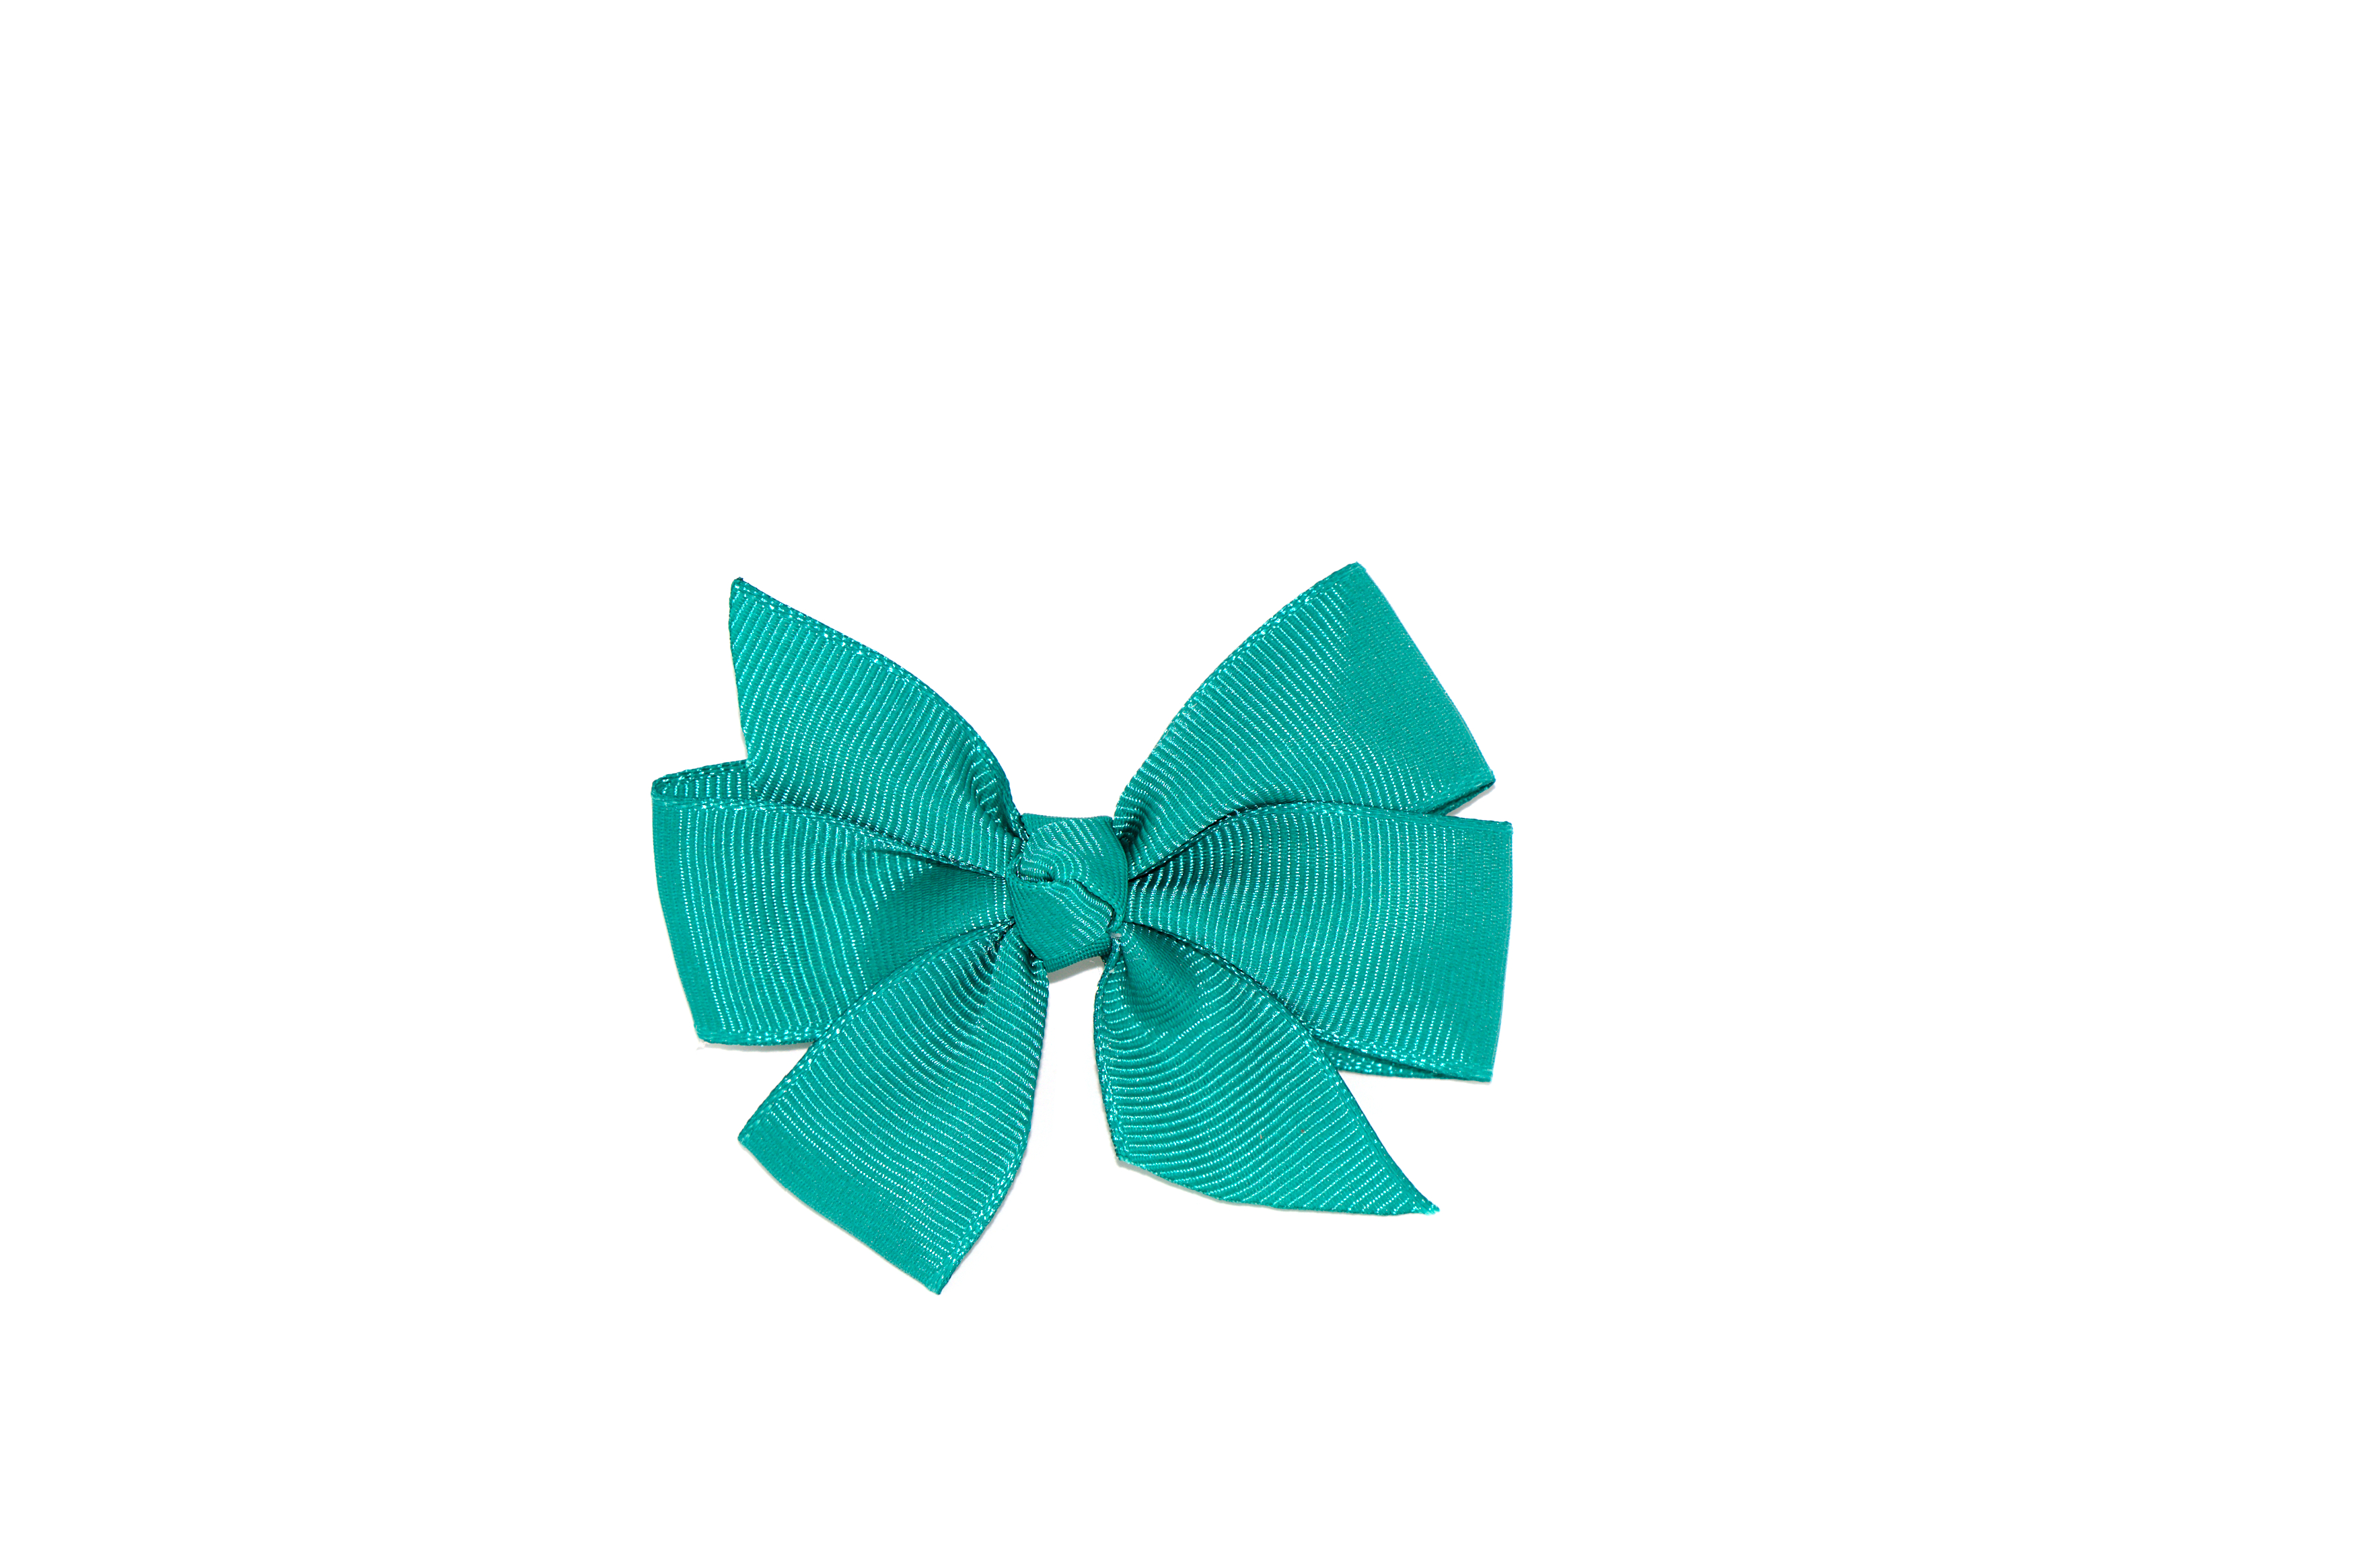 Ribbon, Accessory, Isolated, Luxury, Male, HQ Photo